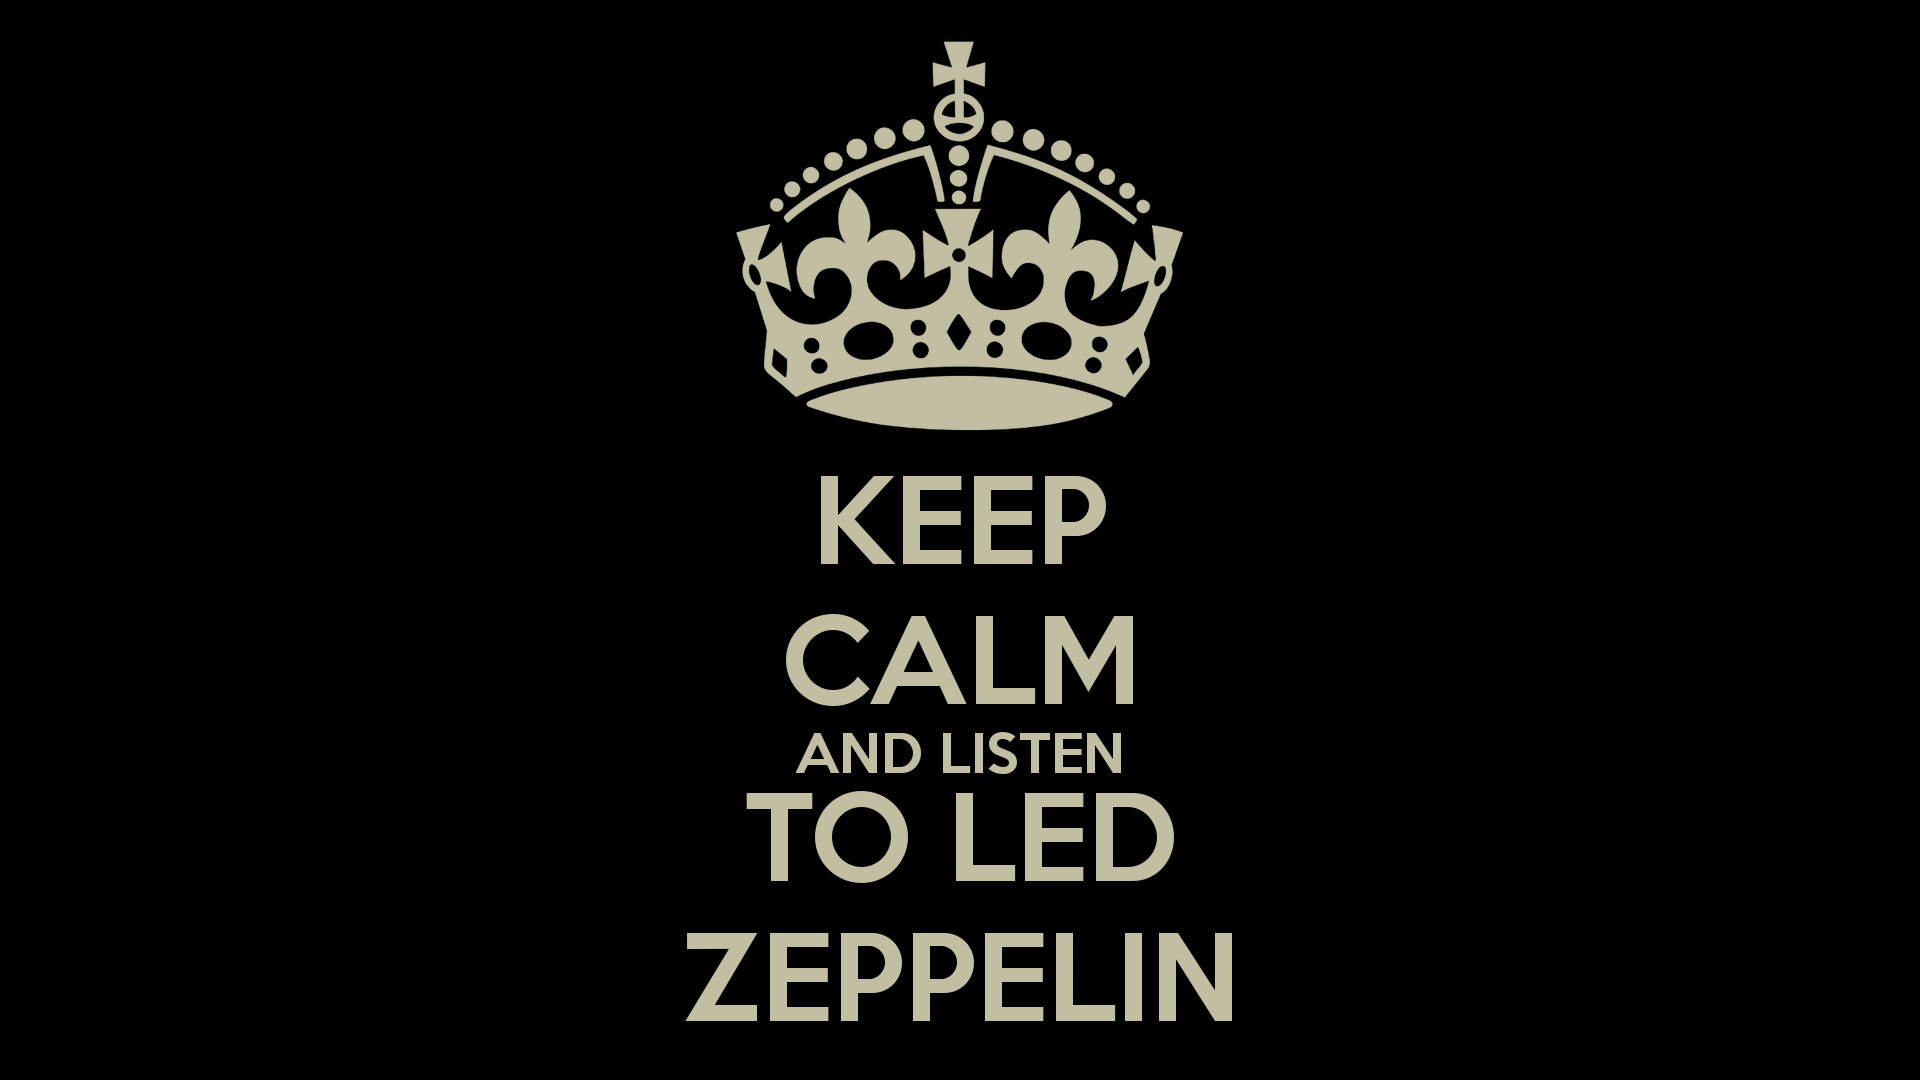 Download Free Led Zeppelin IPhone Wallpapers 1920×1080